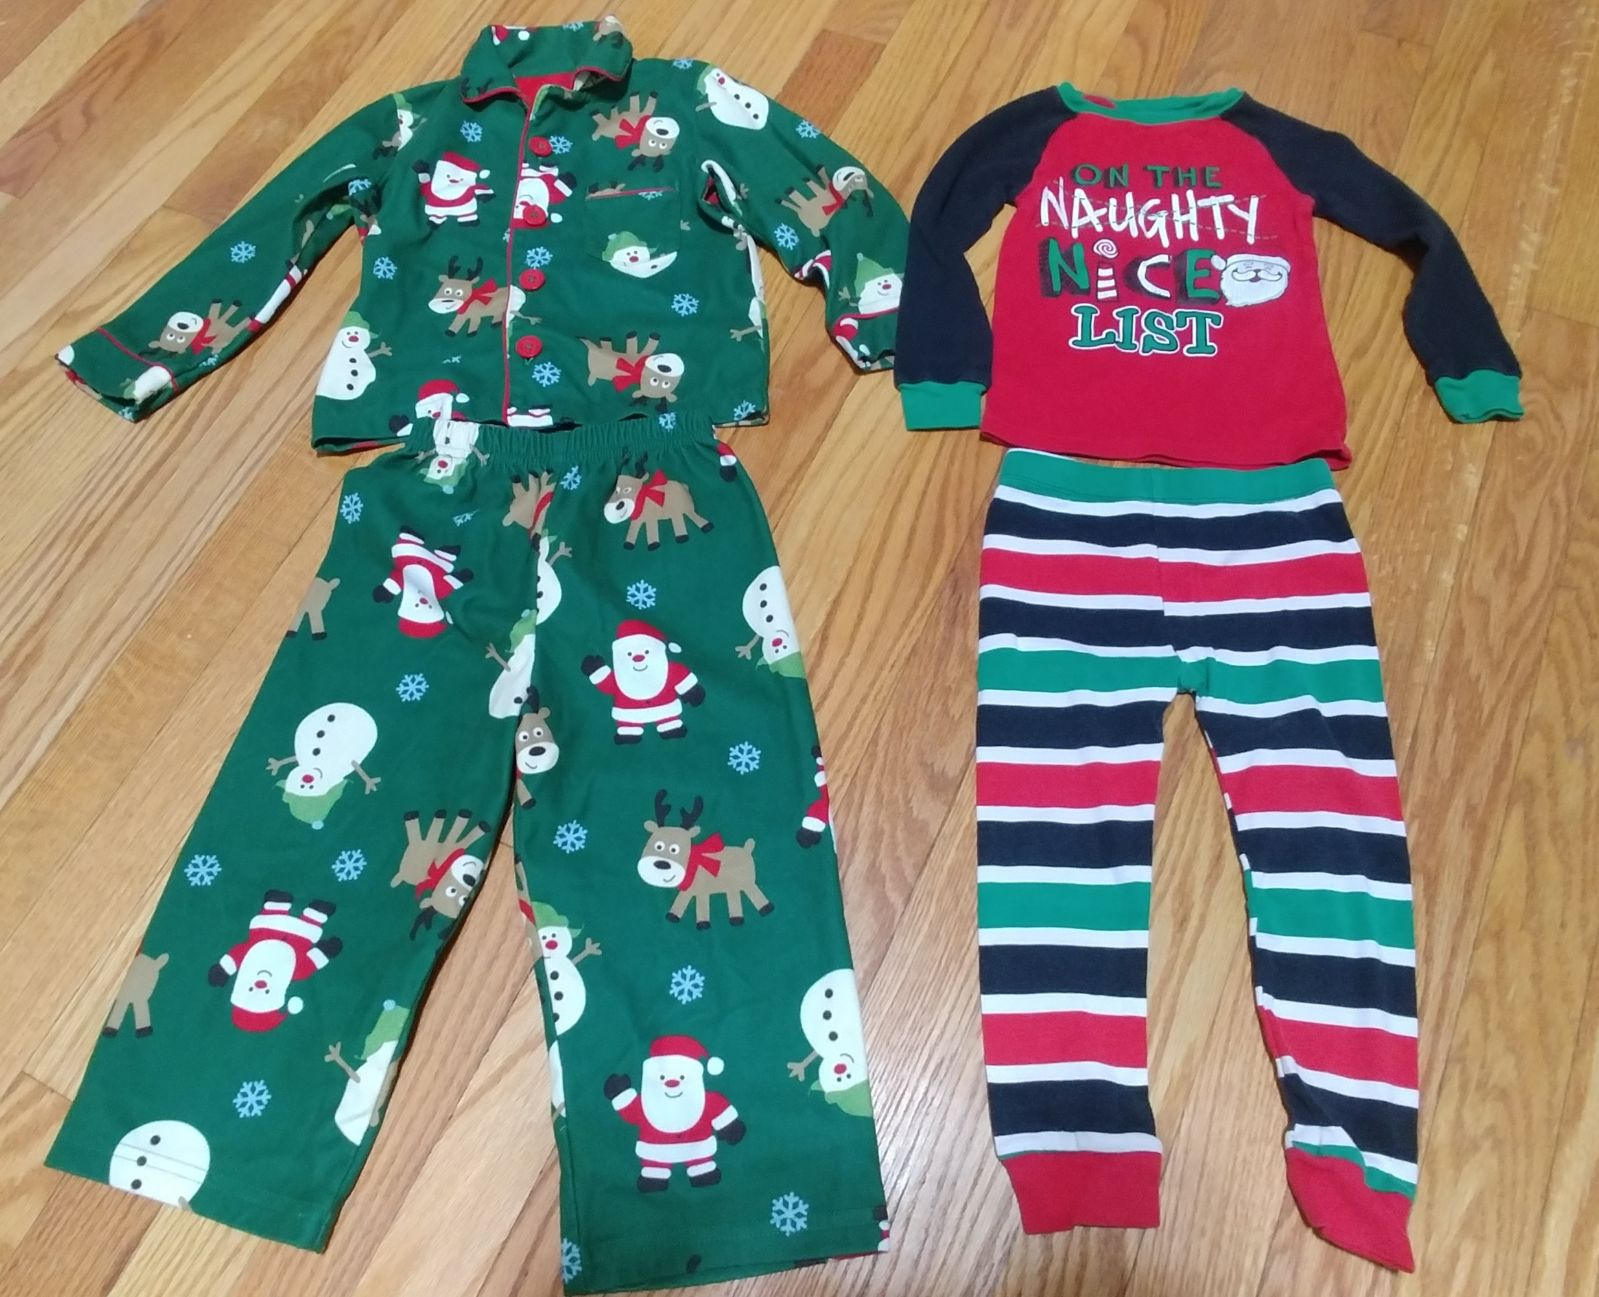 Toddler Boy Pajamas - Size 3t